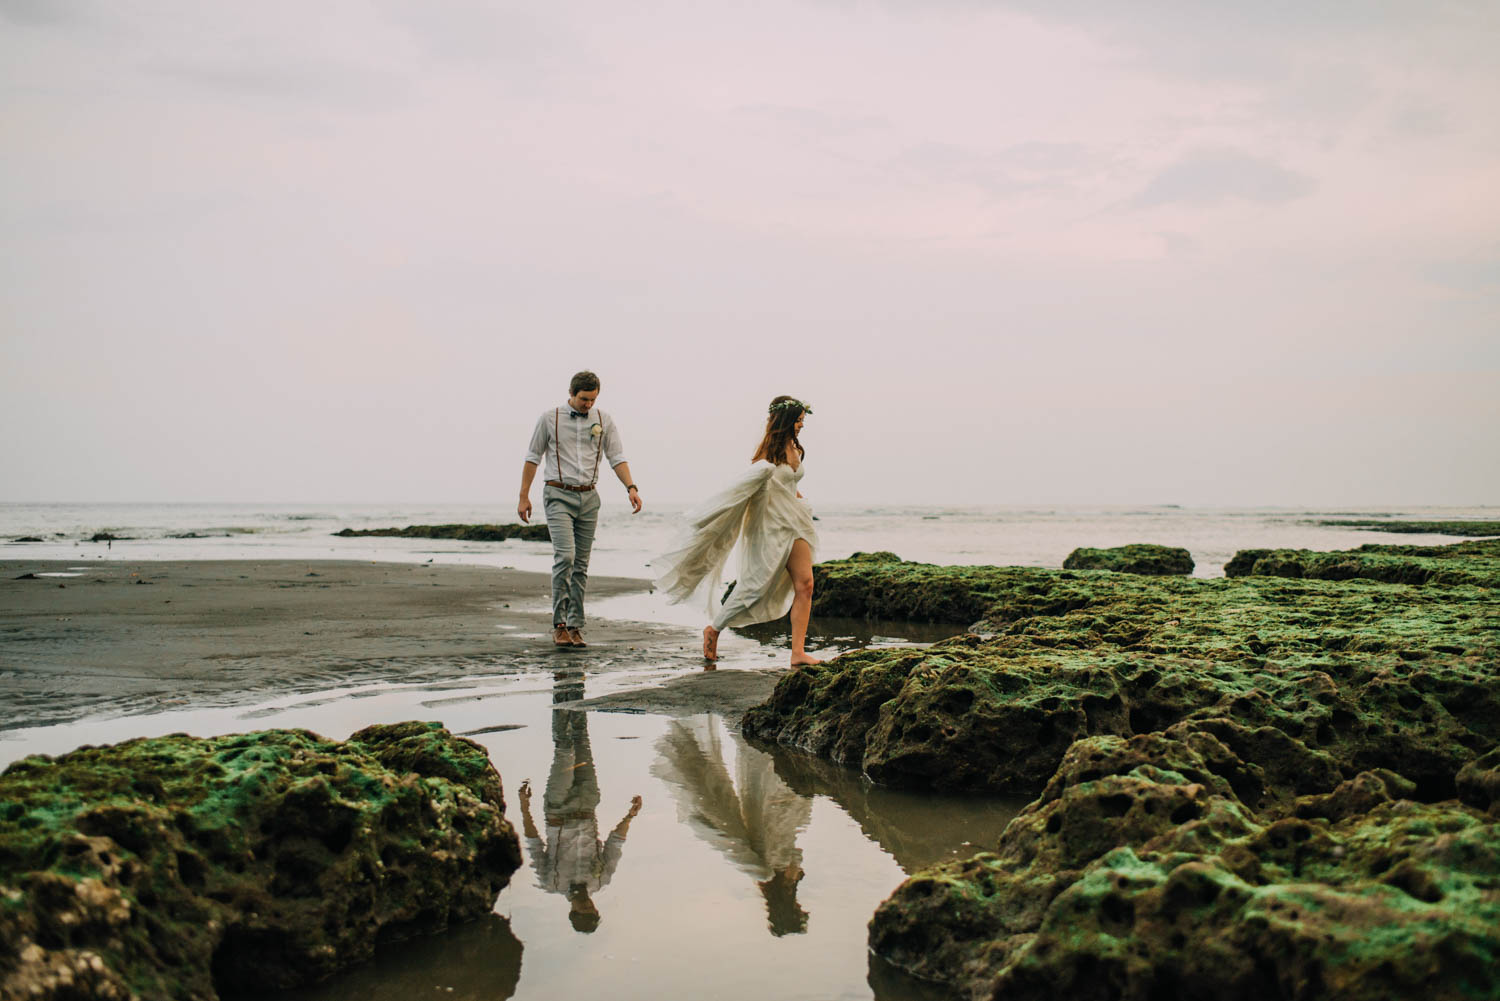 baliwedding-destination-diktatphotography-weddinginbali-baliweddingphotographer-villapusphapuri-89